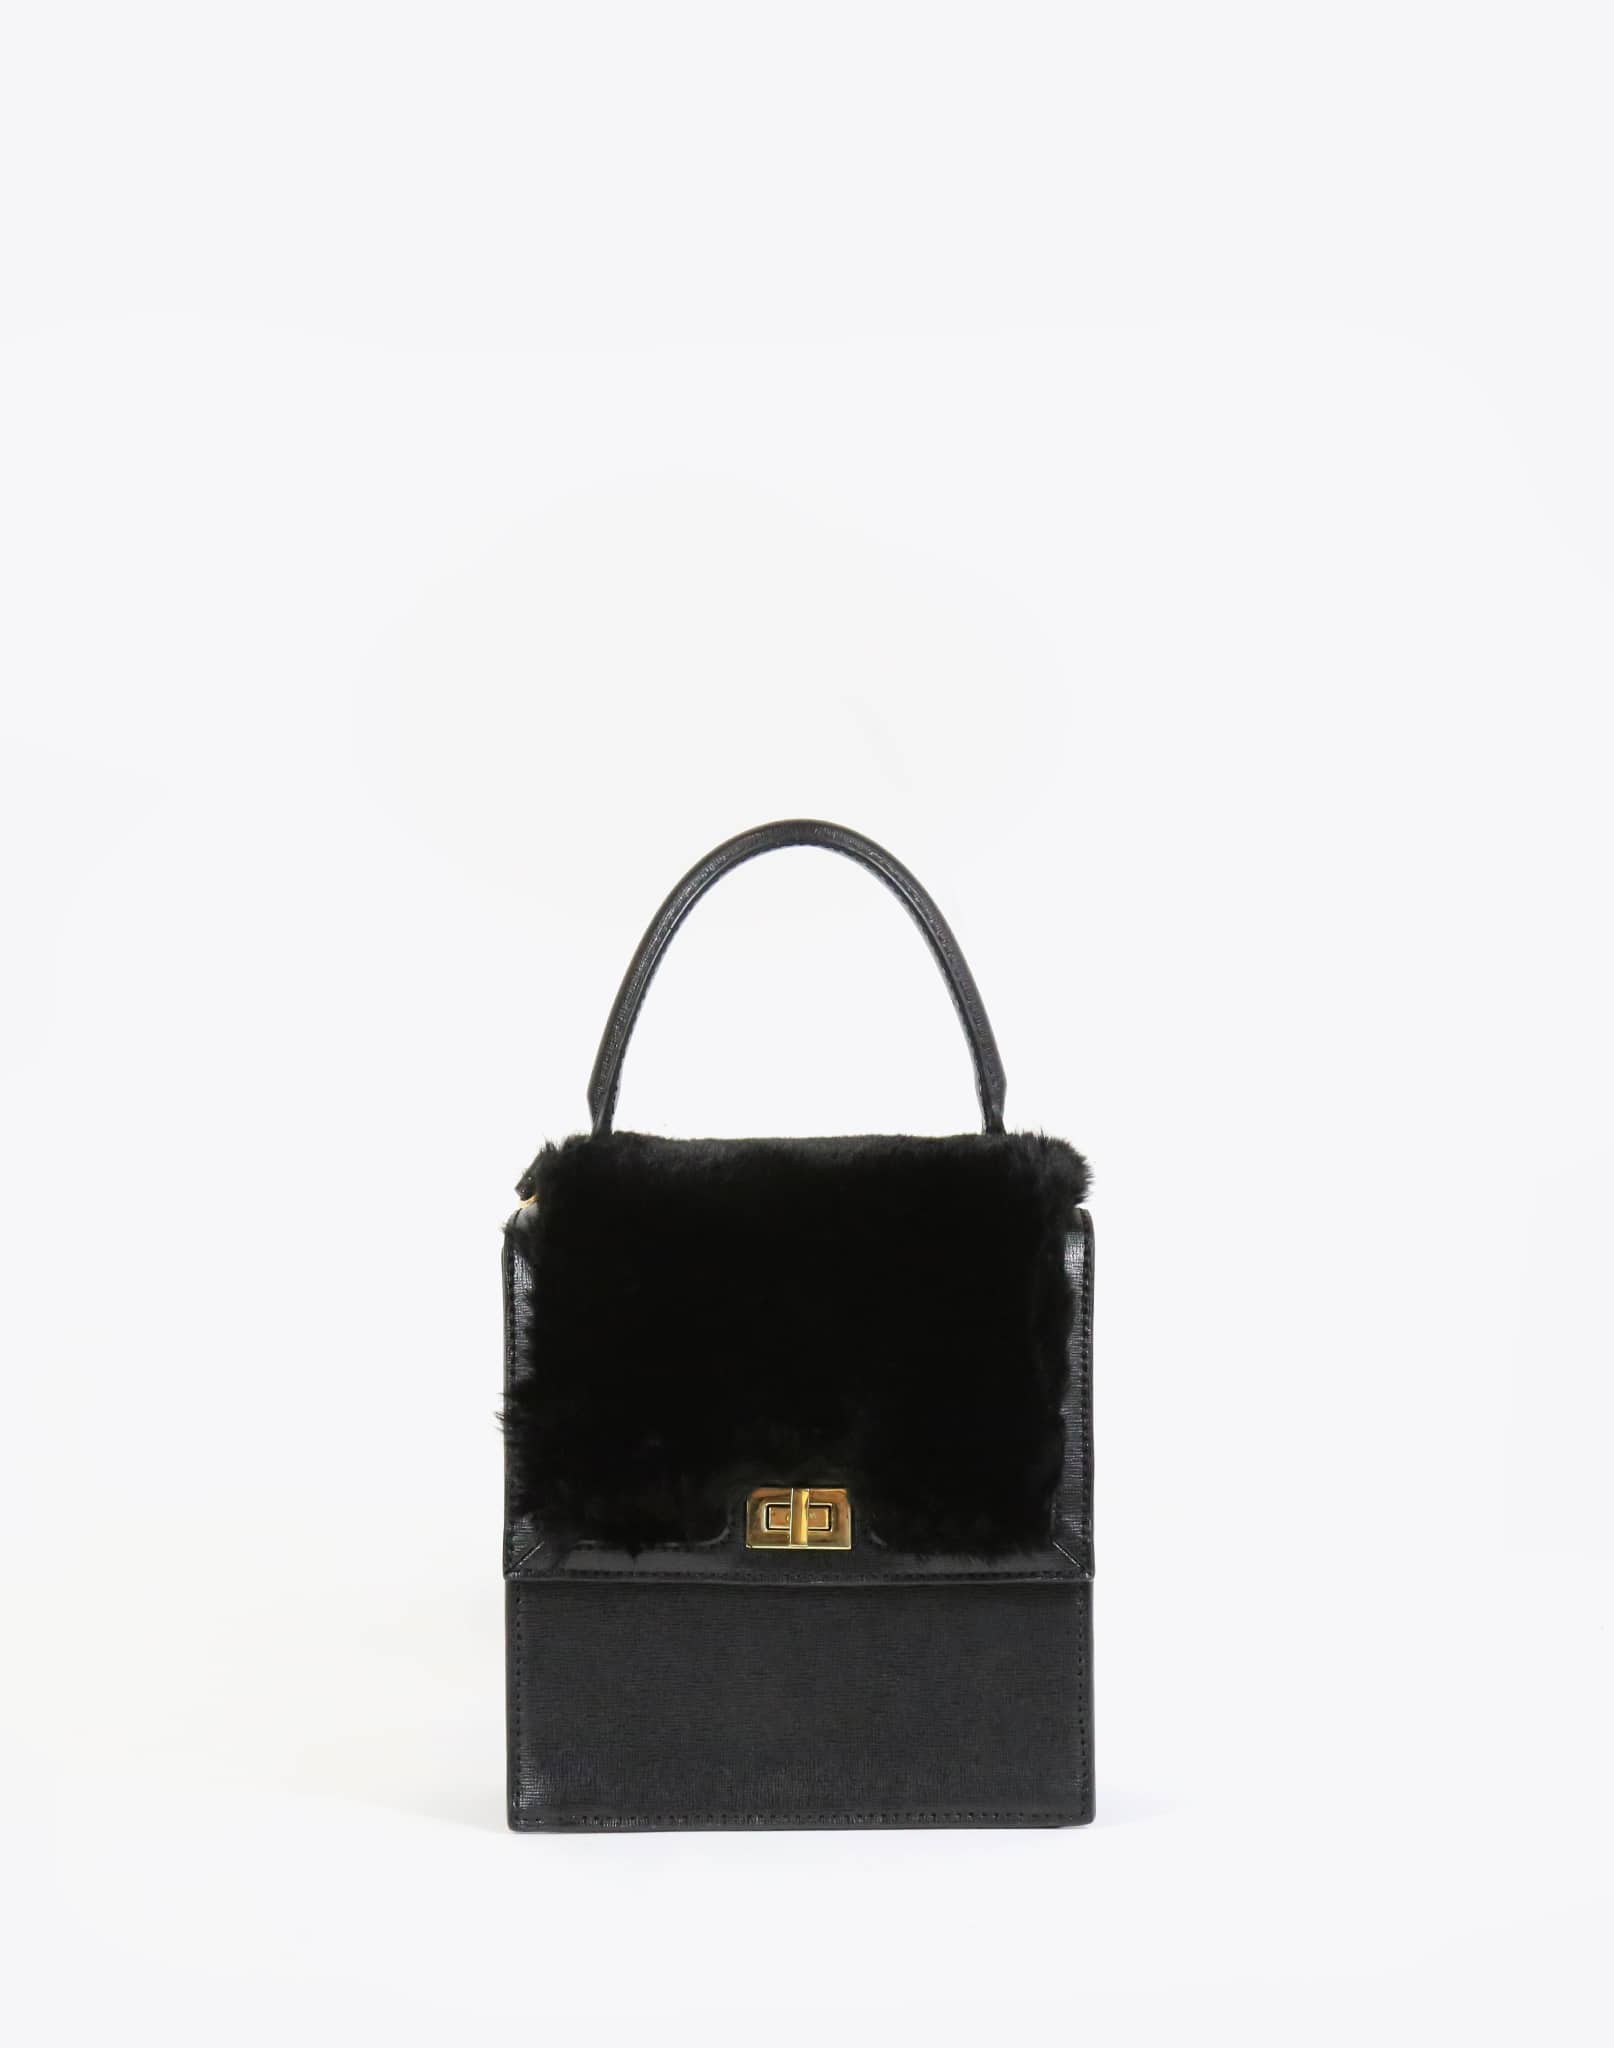 18a3e288e913 Neely   Chloe Mini Lady Bag